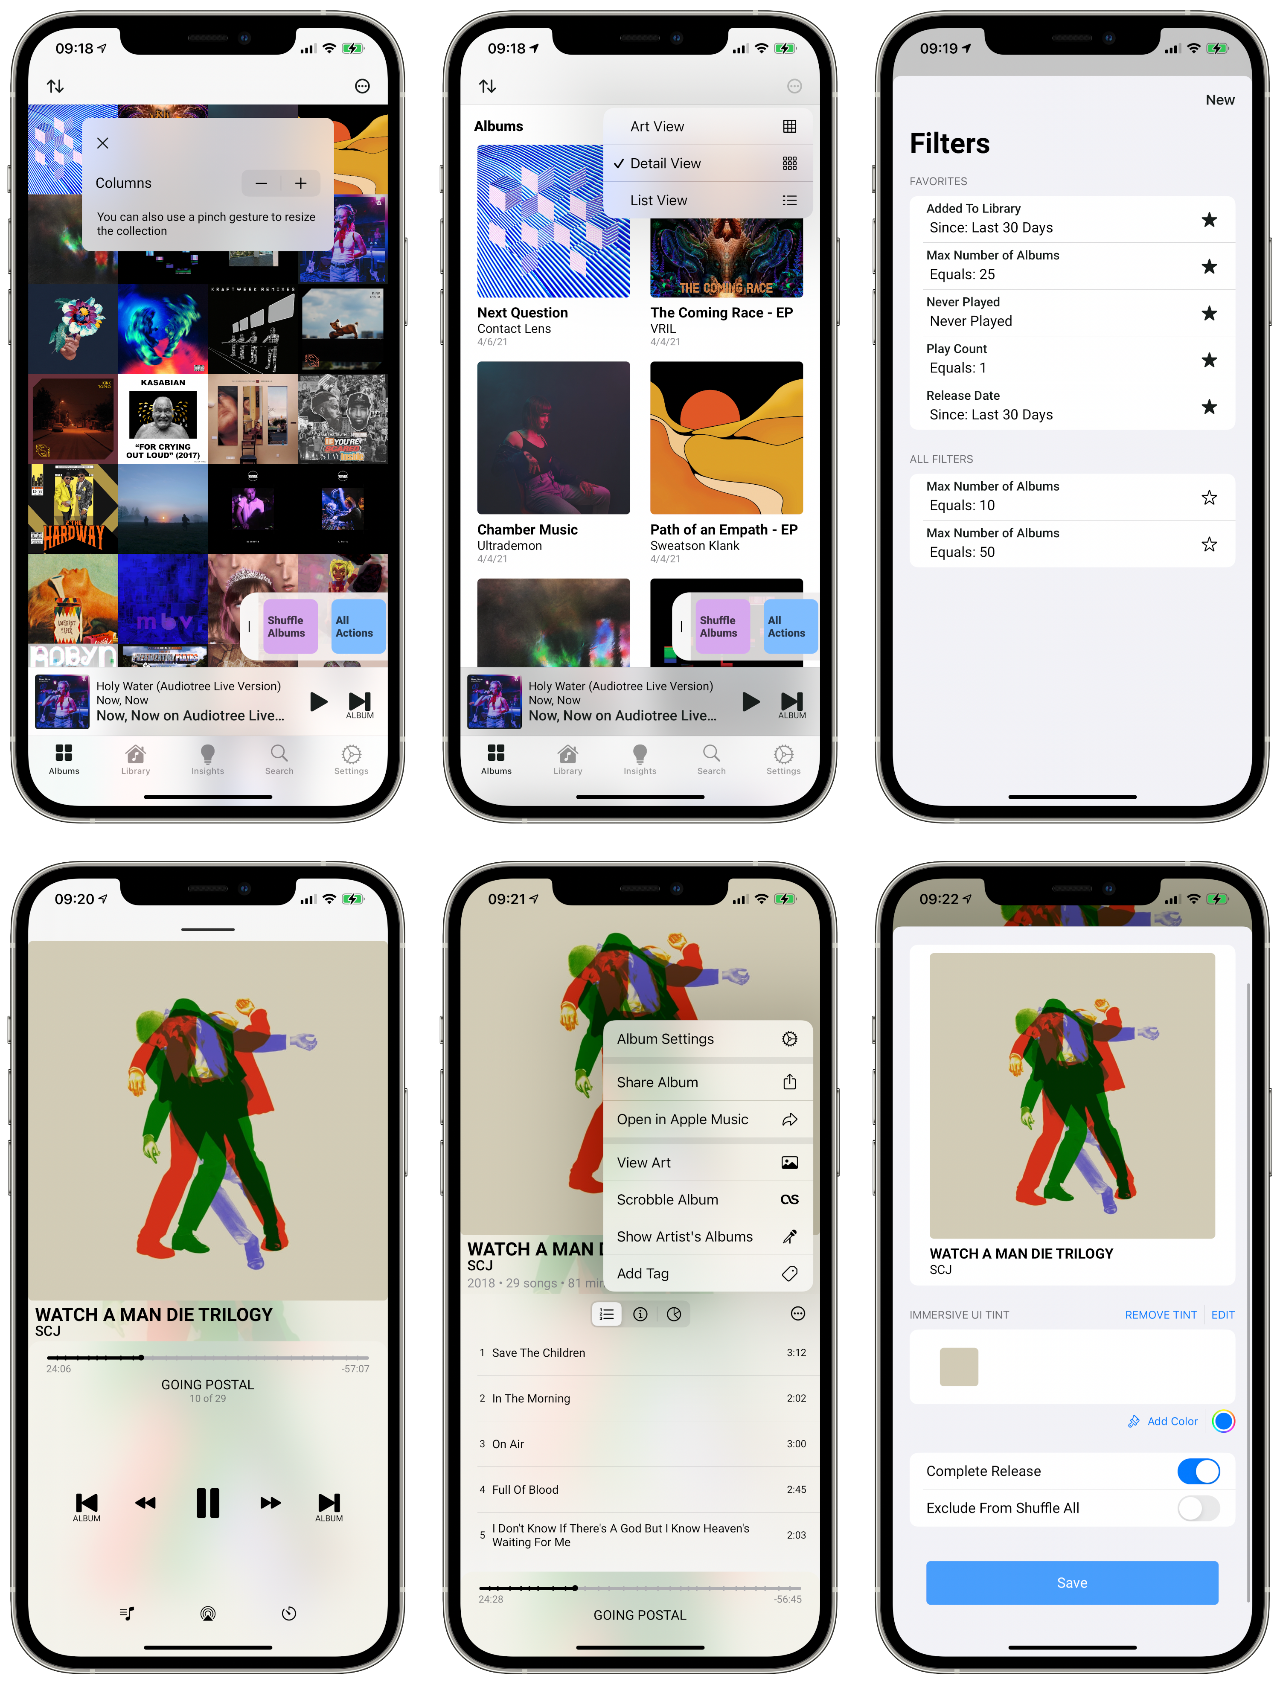 Albums for iOS